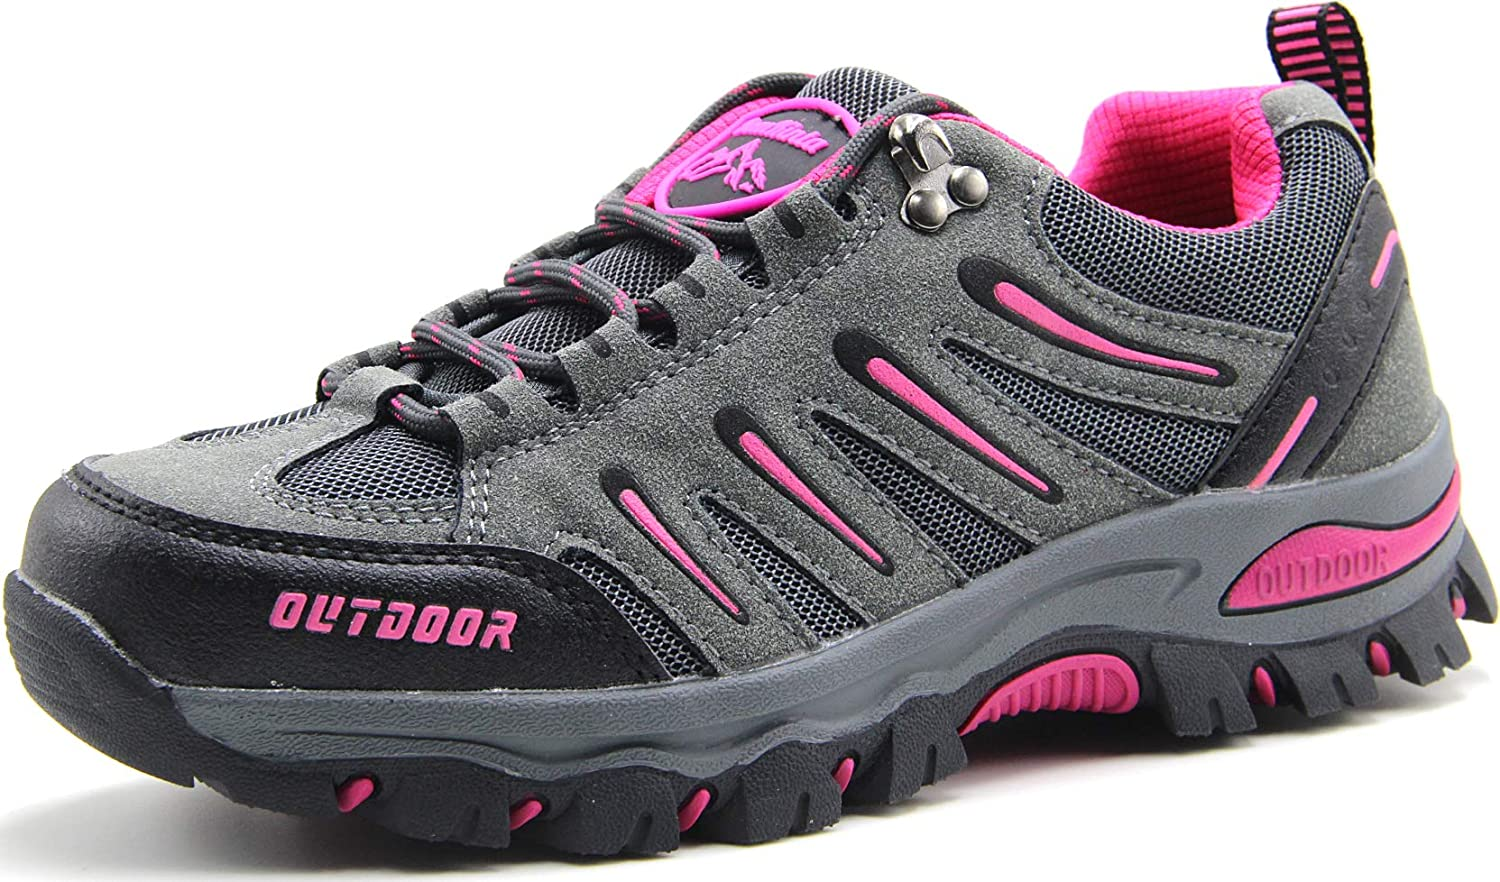 | BomKinta Women's Anti-Slip Lightweight Breathable Hiking Shoes Quick-Dry Trekking Shoes for Women | Hiking Shoes